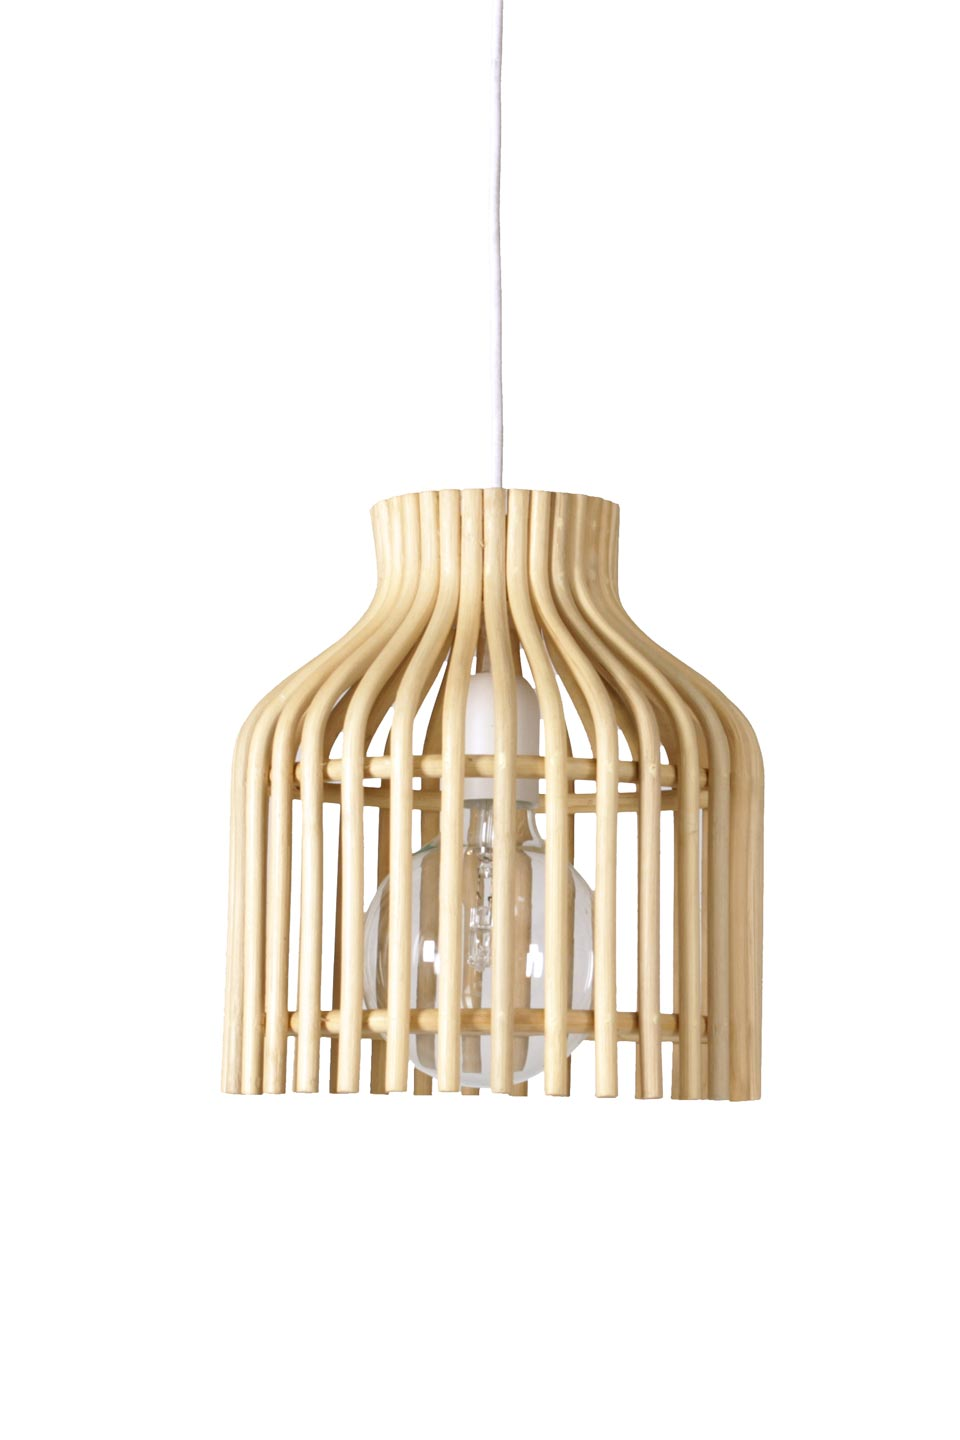 Image of: Mini Firefly Pendant Lamp In Natural Rattan Vincent Sheppard Contemporary Design Lighting Ref 18110056